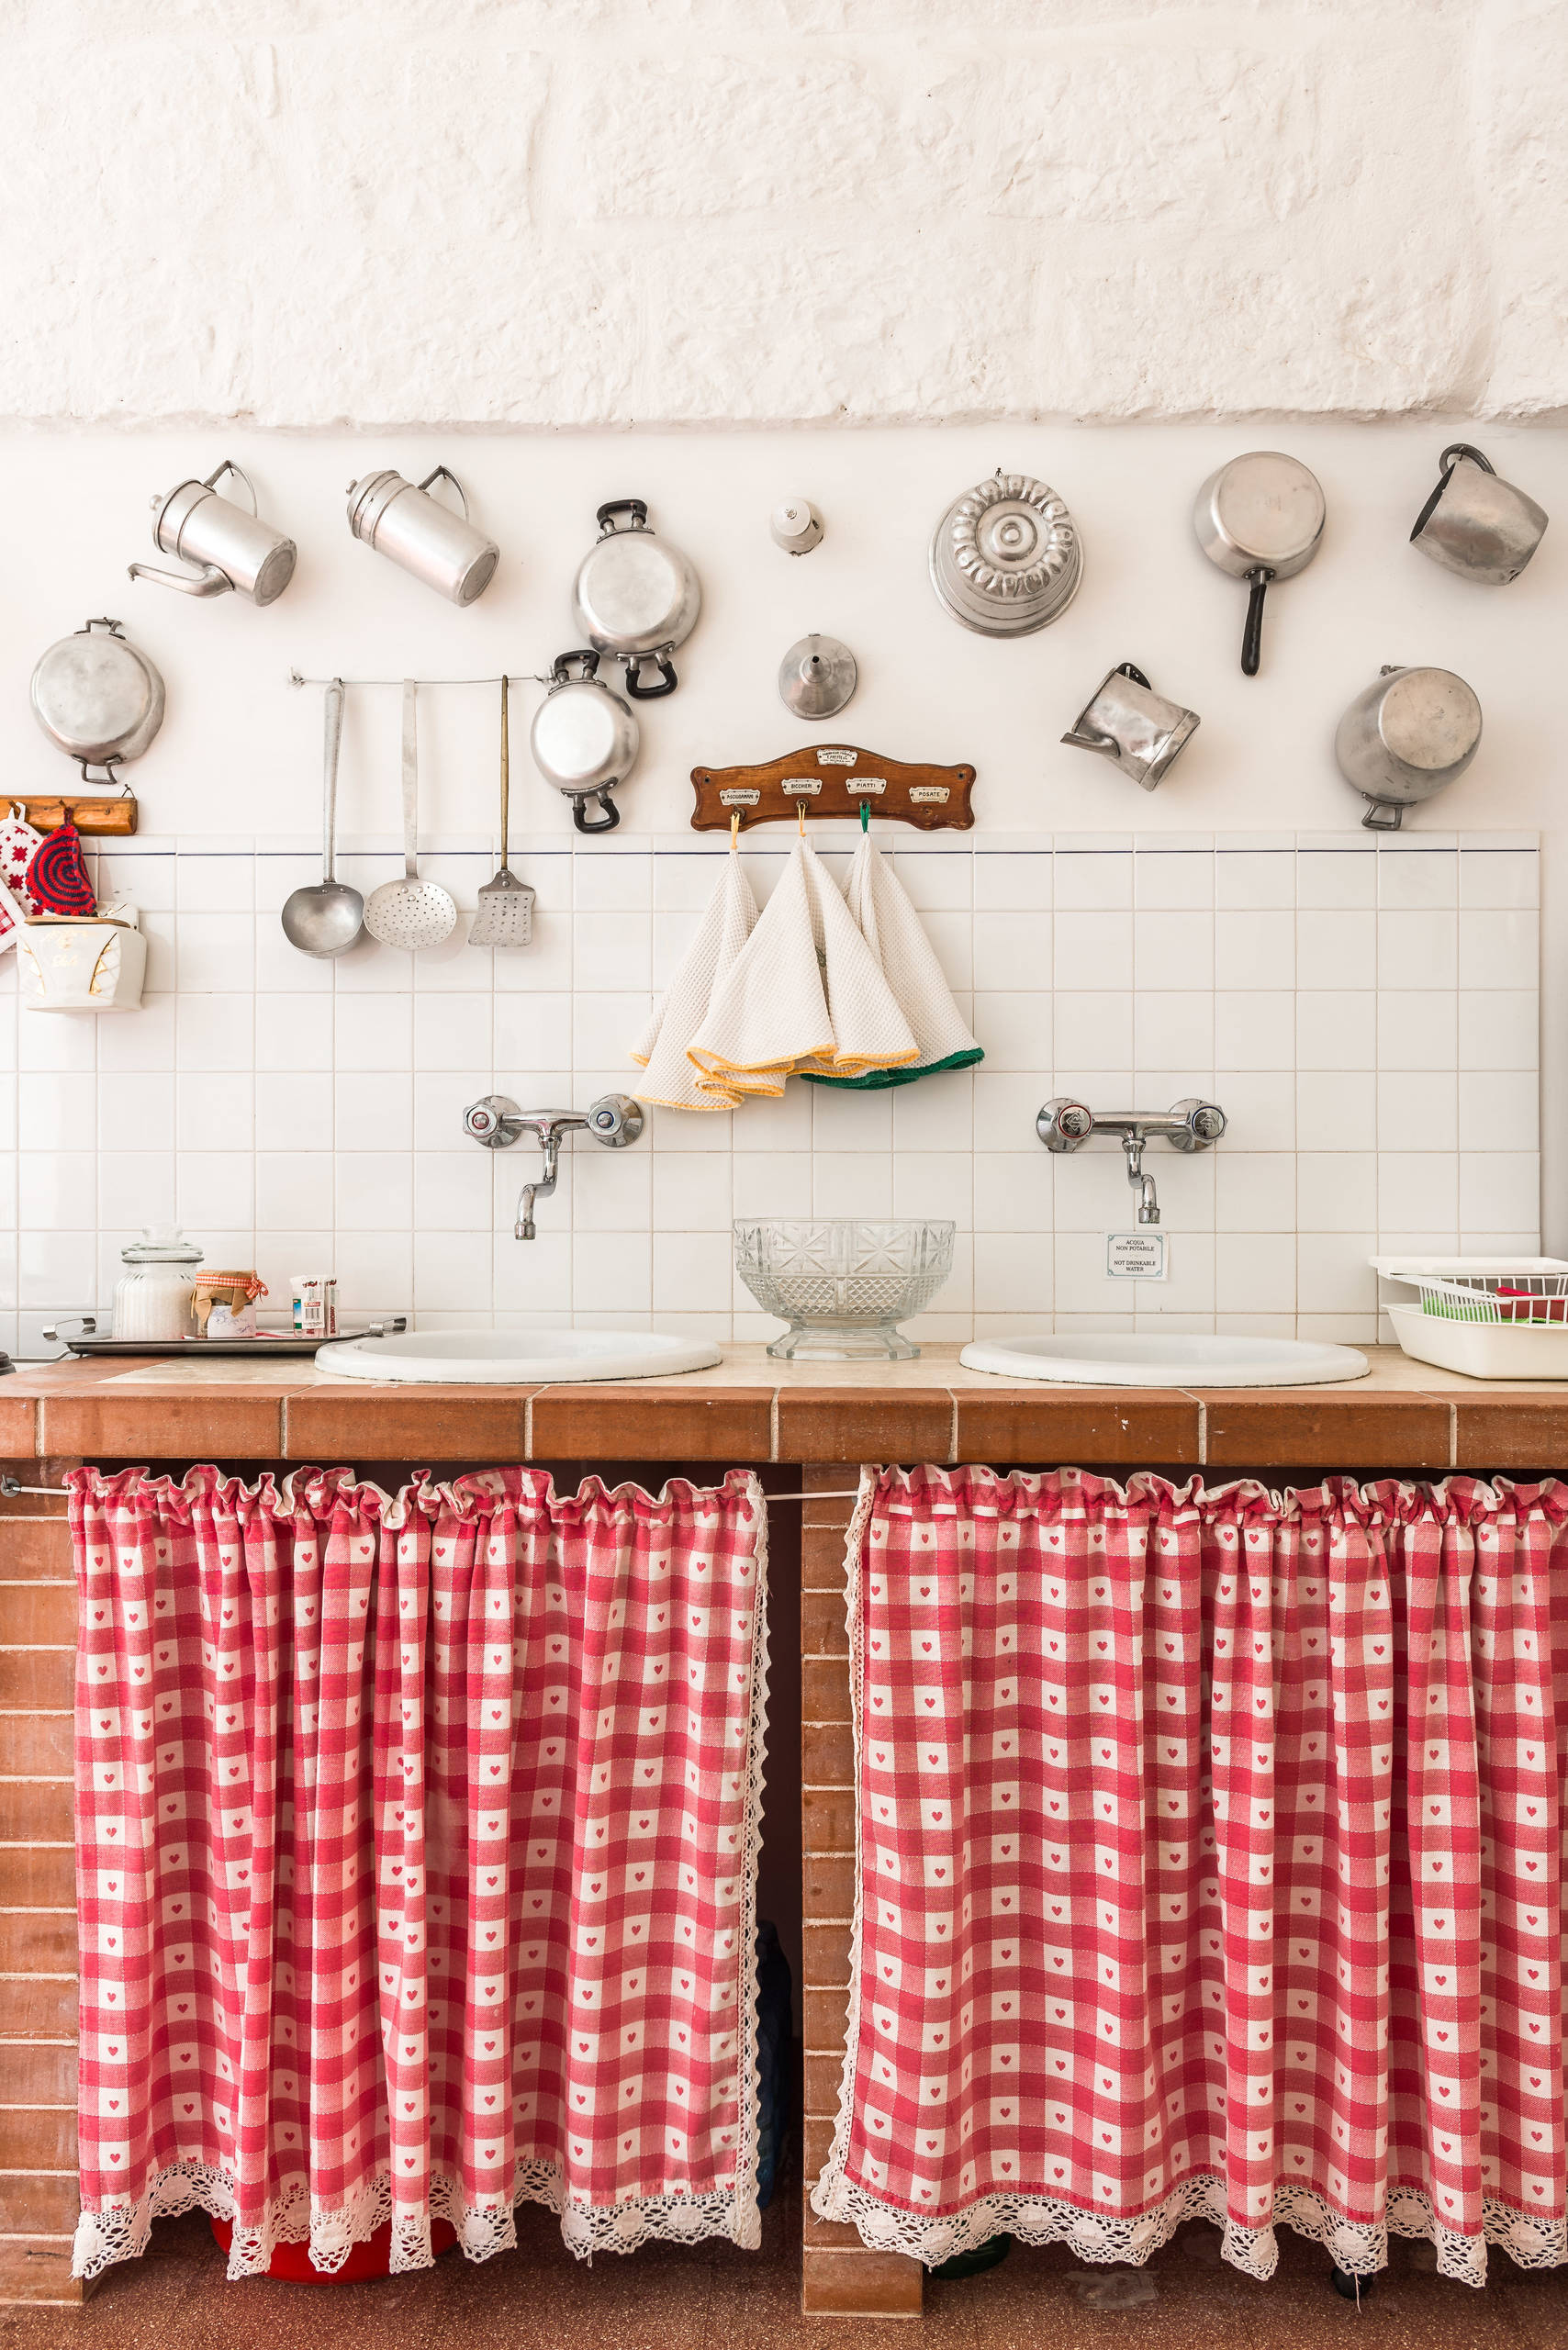 75 Beautiful Farmhouse Red Kitchen Pictures Ideas December 2020 Houzz